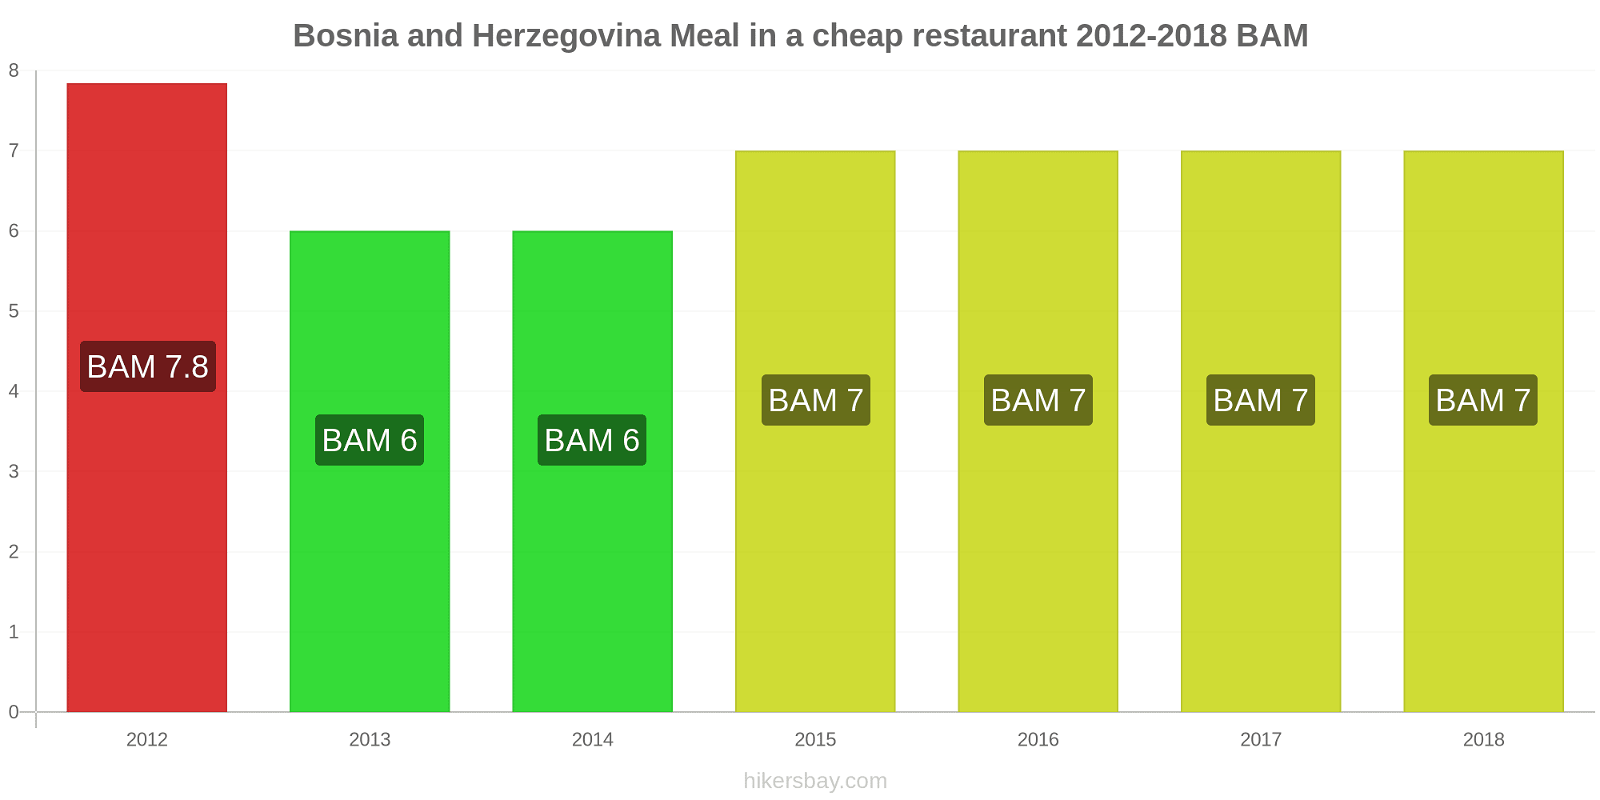 Bosnia and Herzegovina price changes Meal in a cheap restaurant hikersbay.com